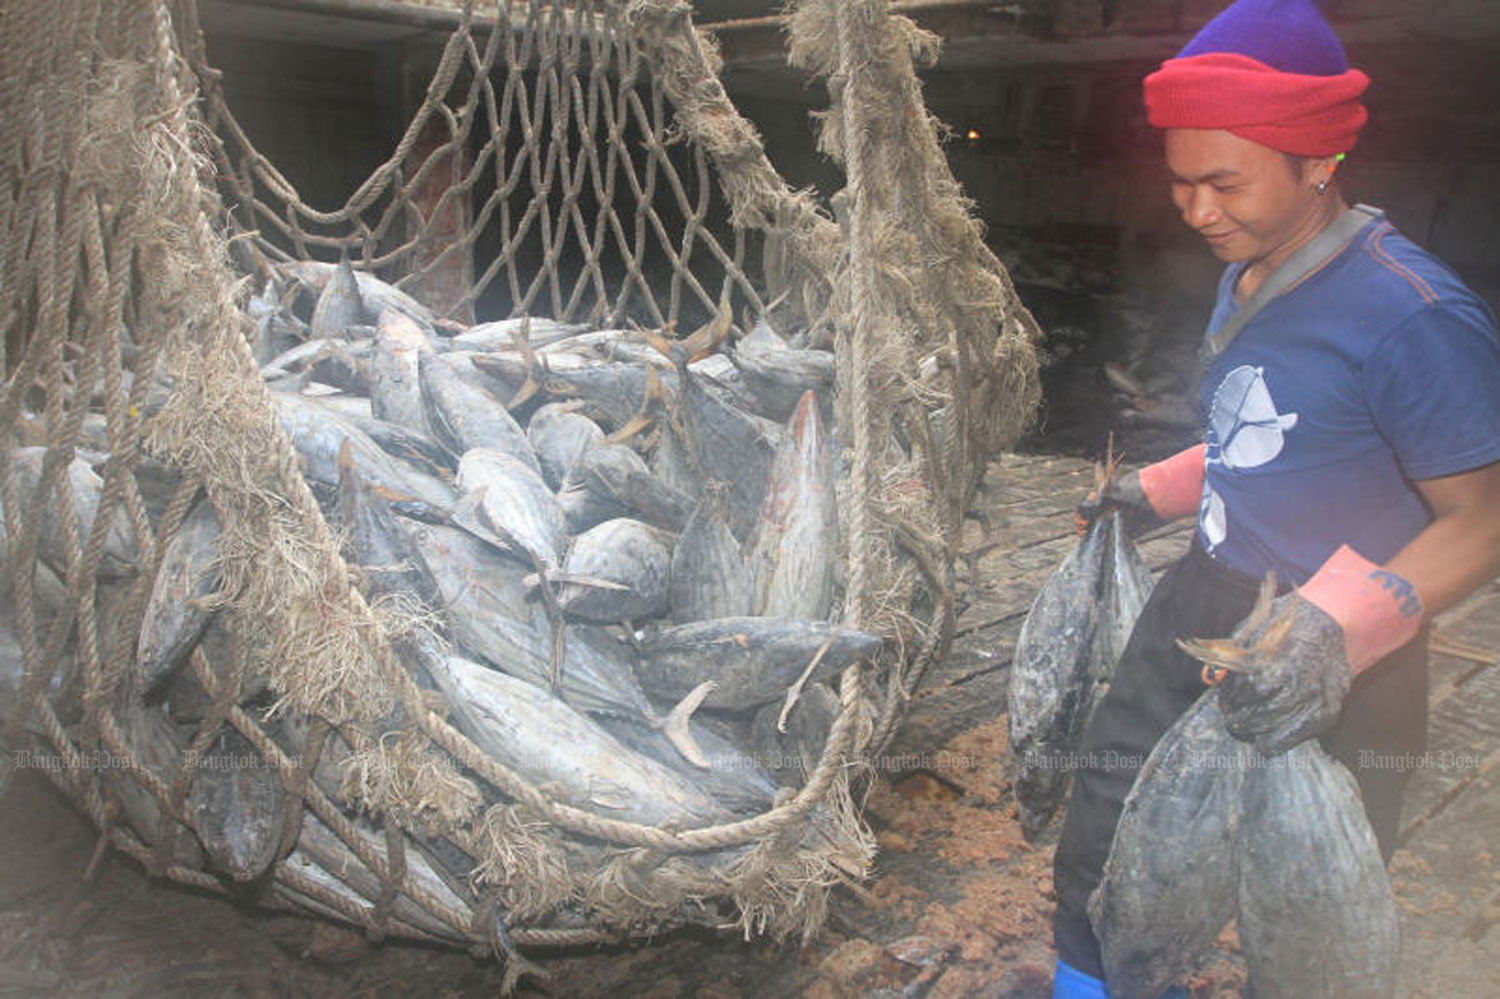 Frozen fish are unloaded from a vessel at a port in Samut Prakan. (File photo by Somchai Poomlard)